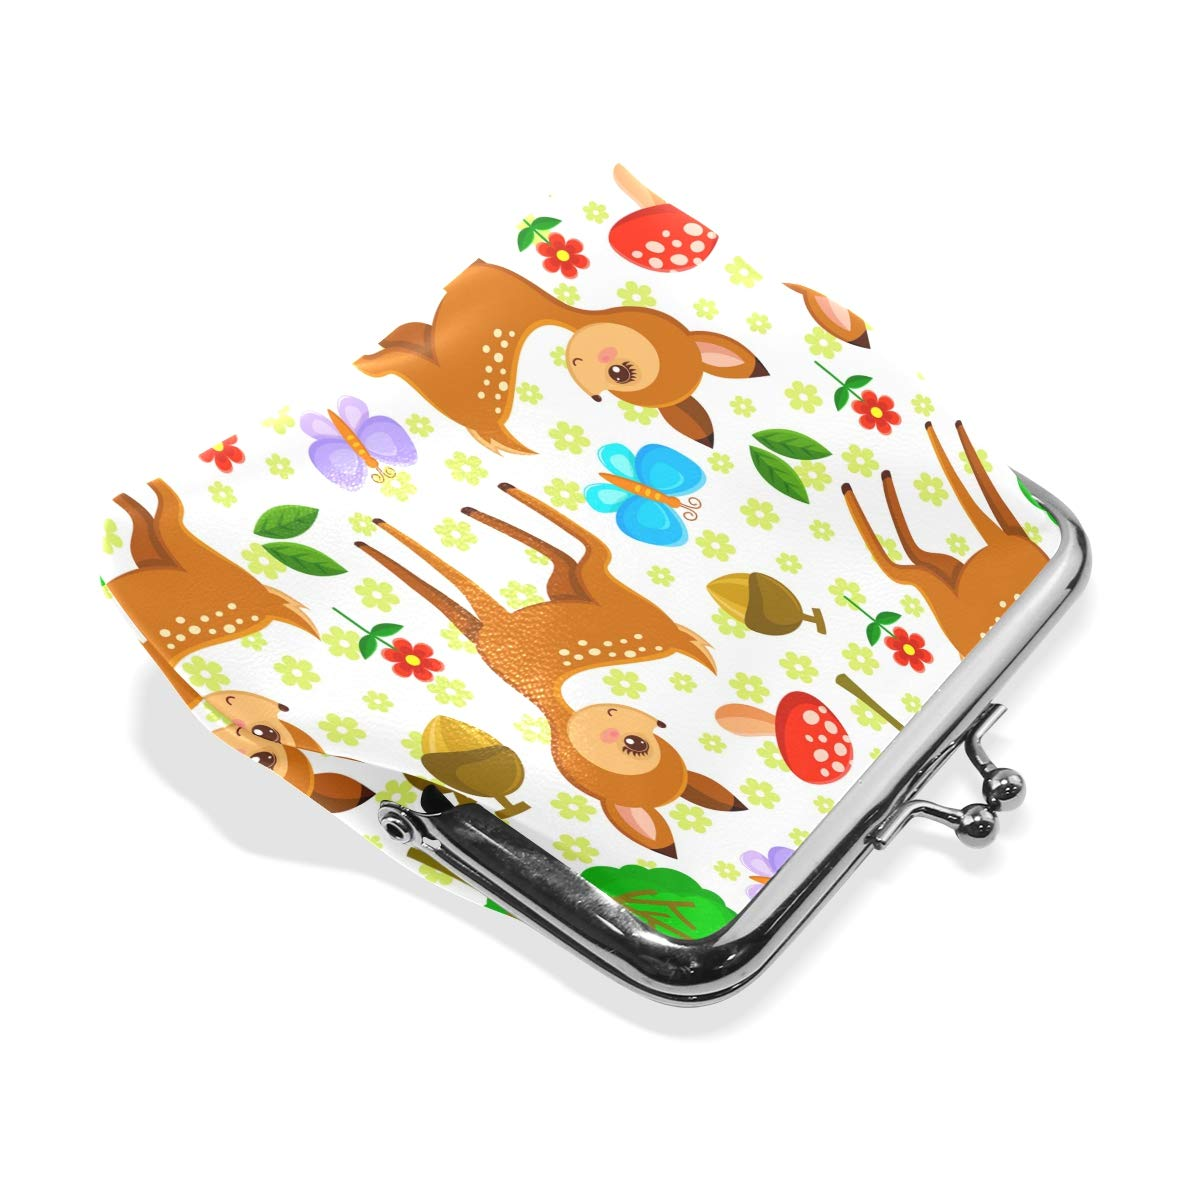 Fashion Womens Coin Purse Forest Deer Insect Mushroom Vintage Pouch Mini Purse Wallets